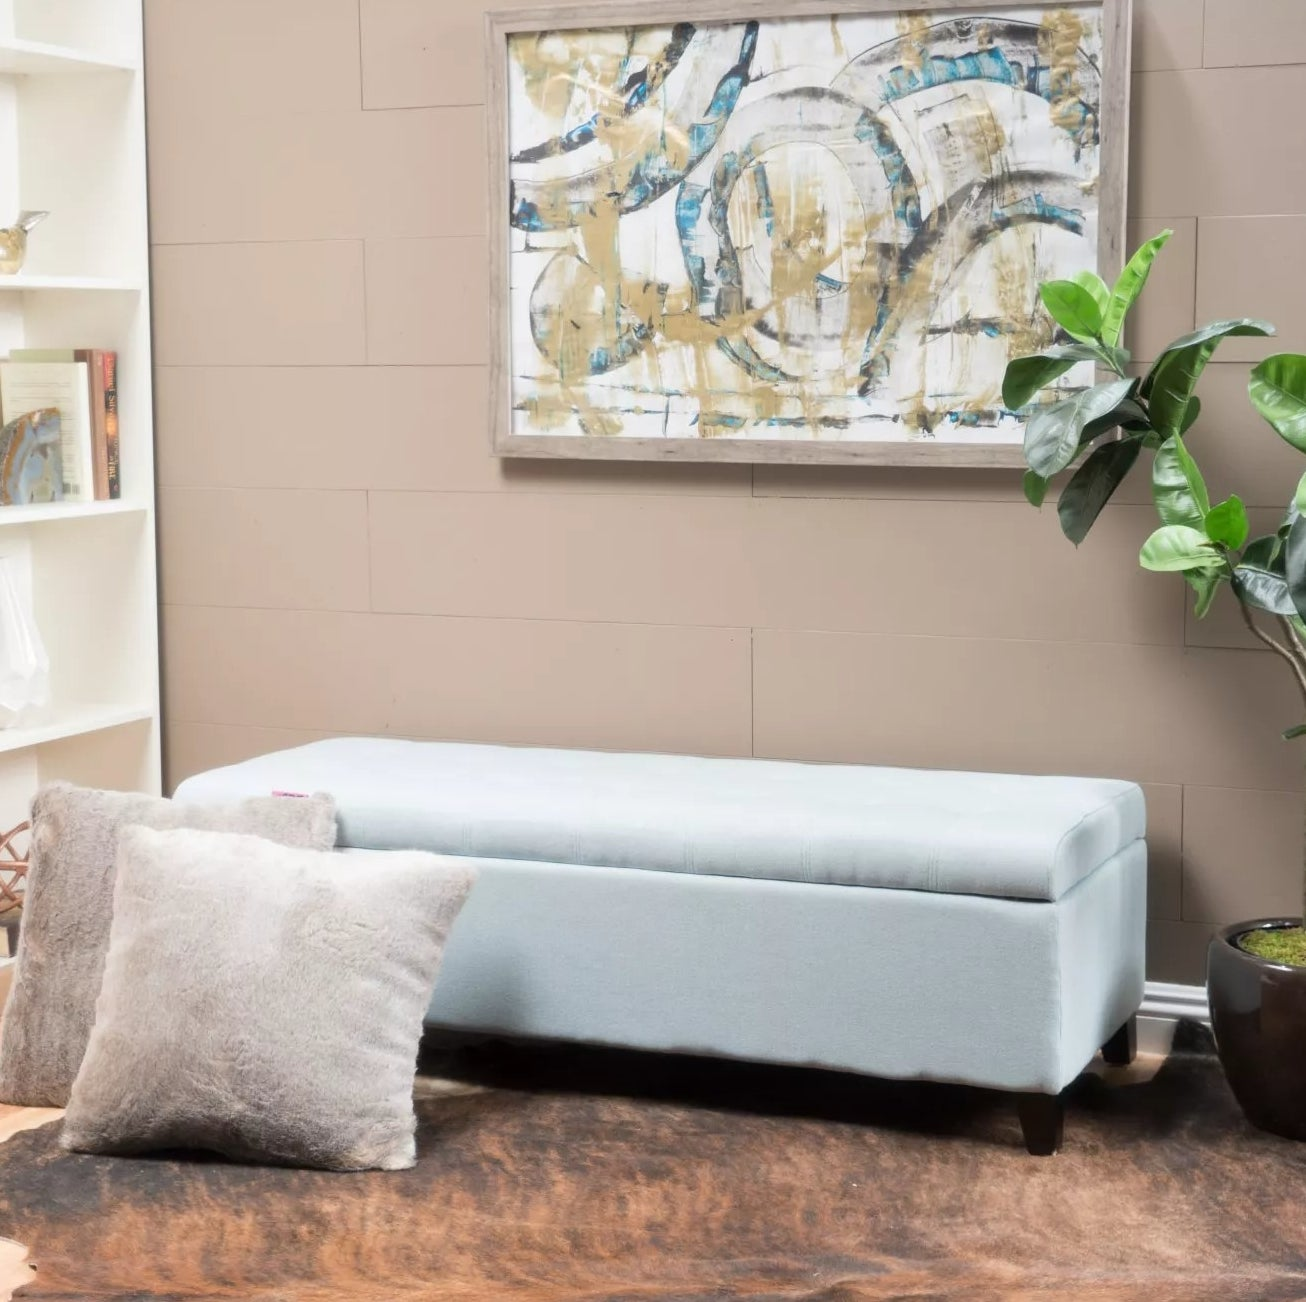 The ottoman in sky blue